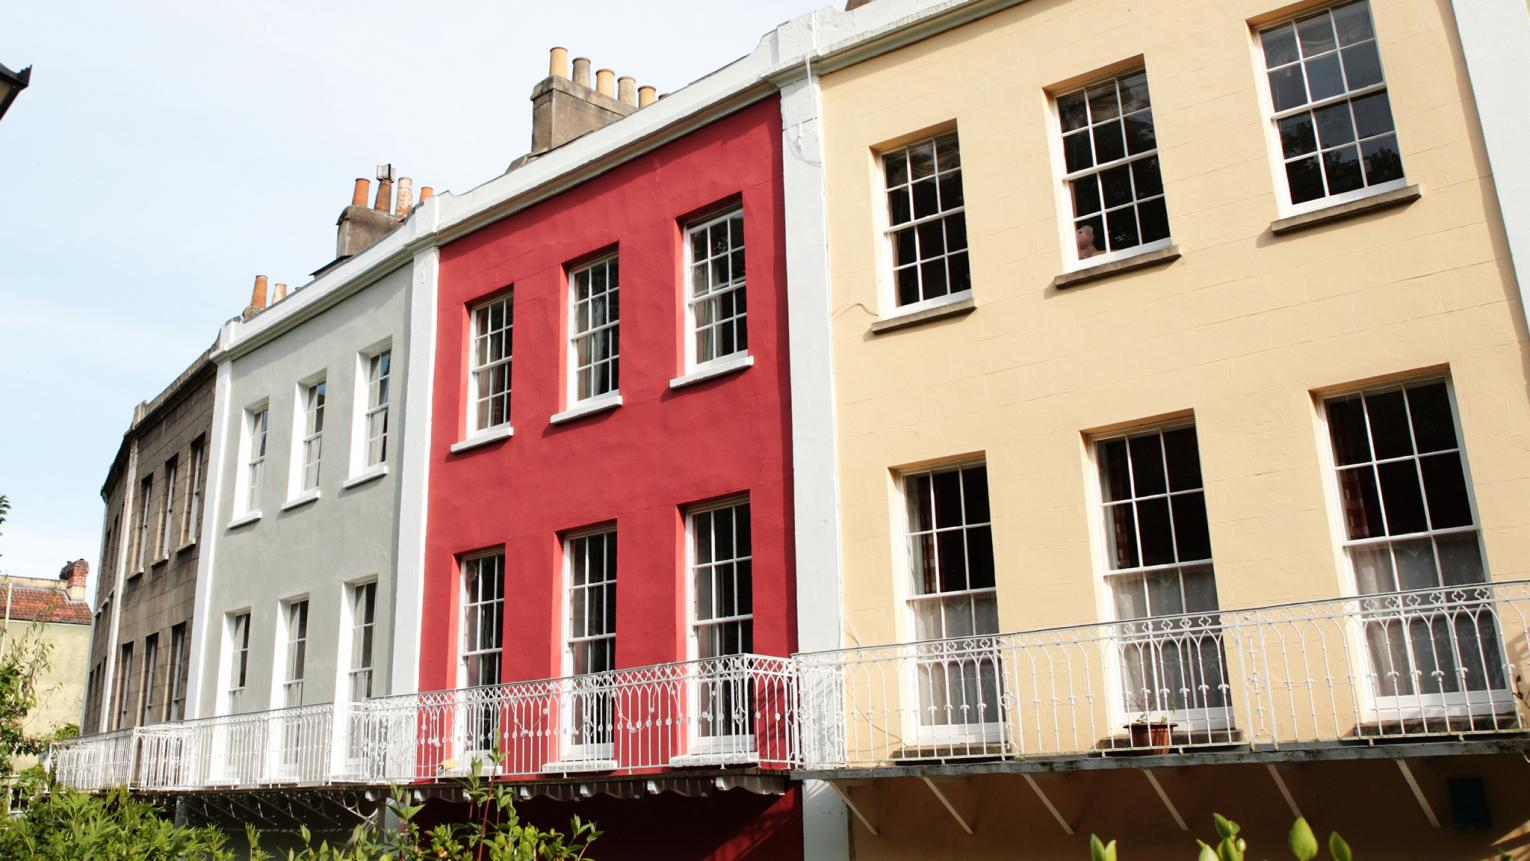 Classic paint colours show off the exterior details of a row of houses.